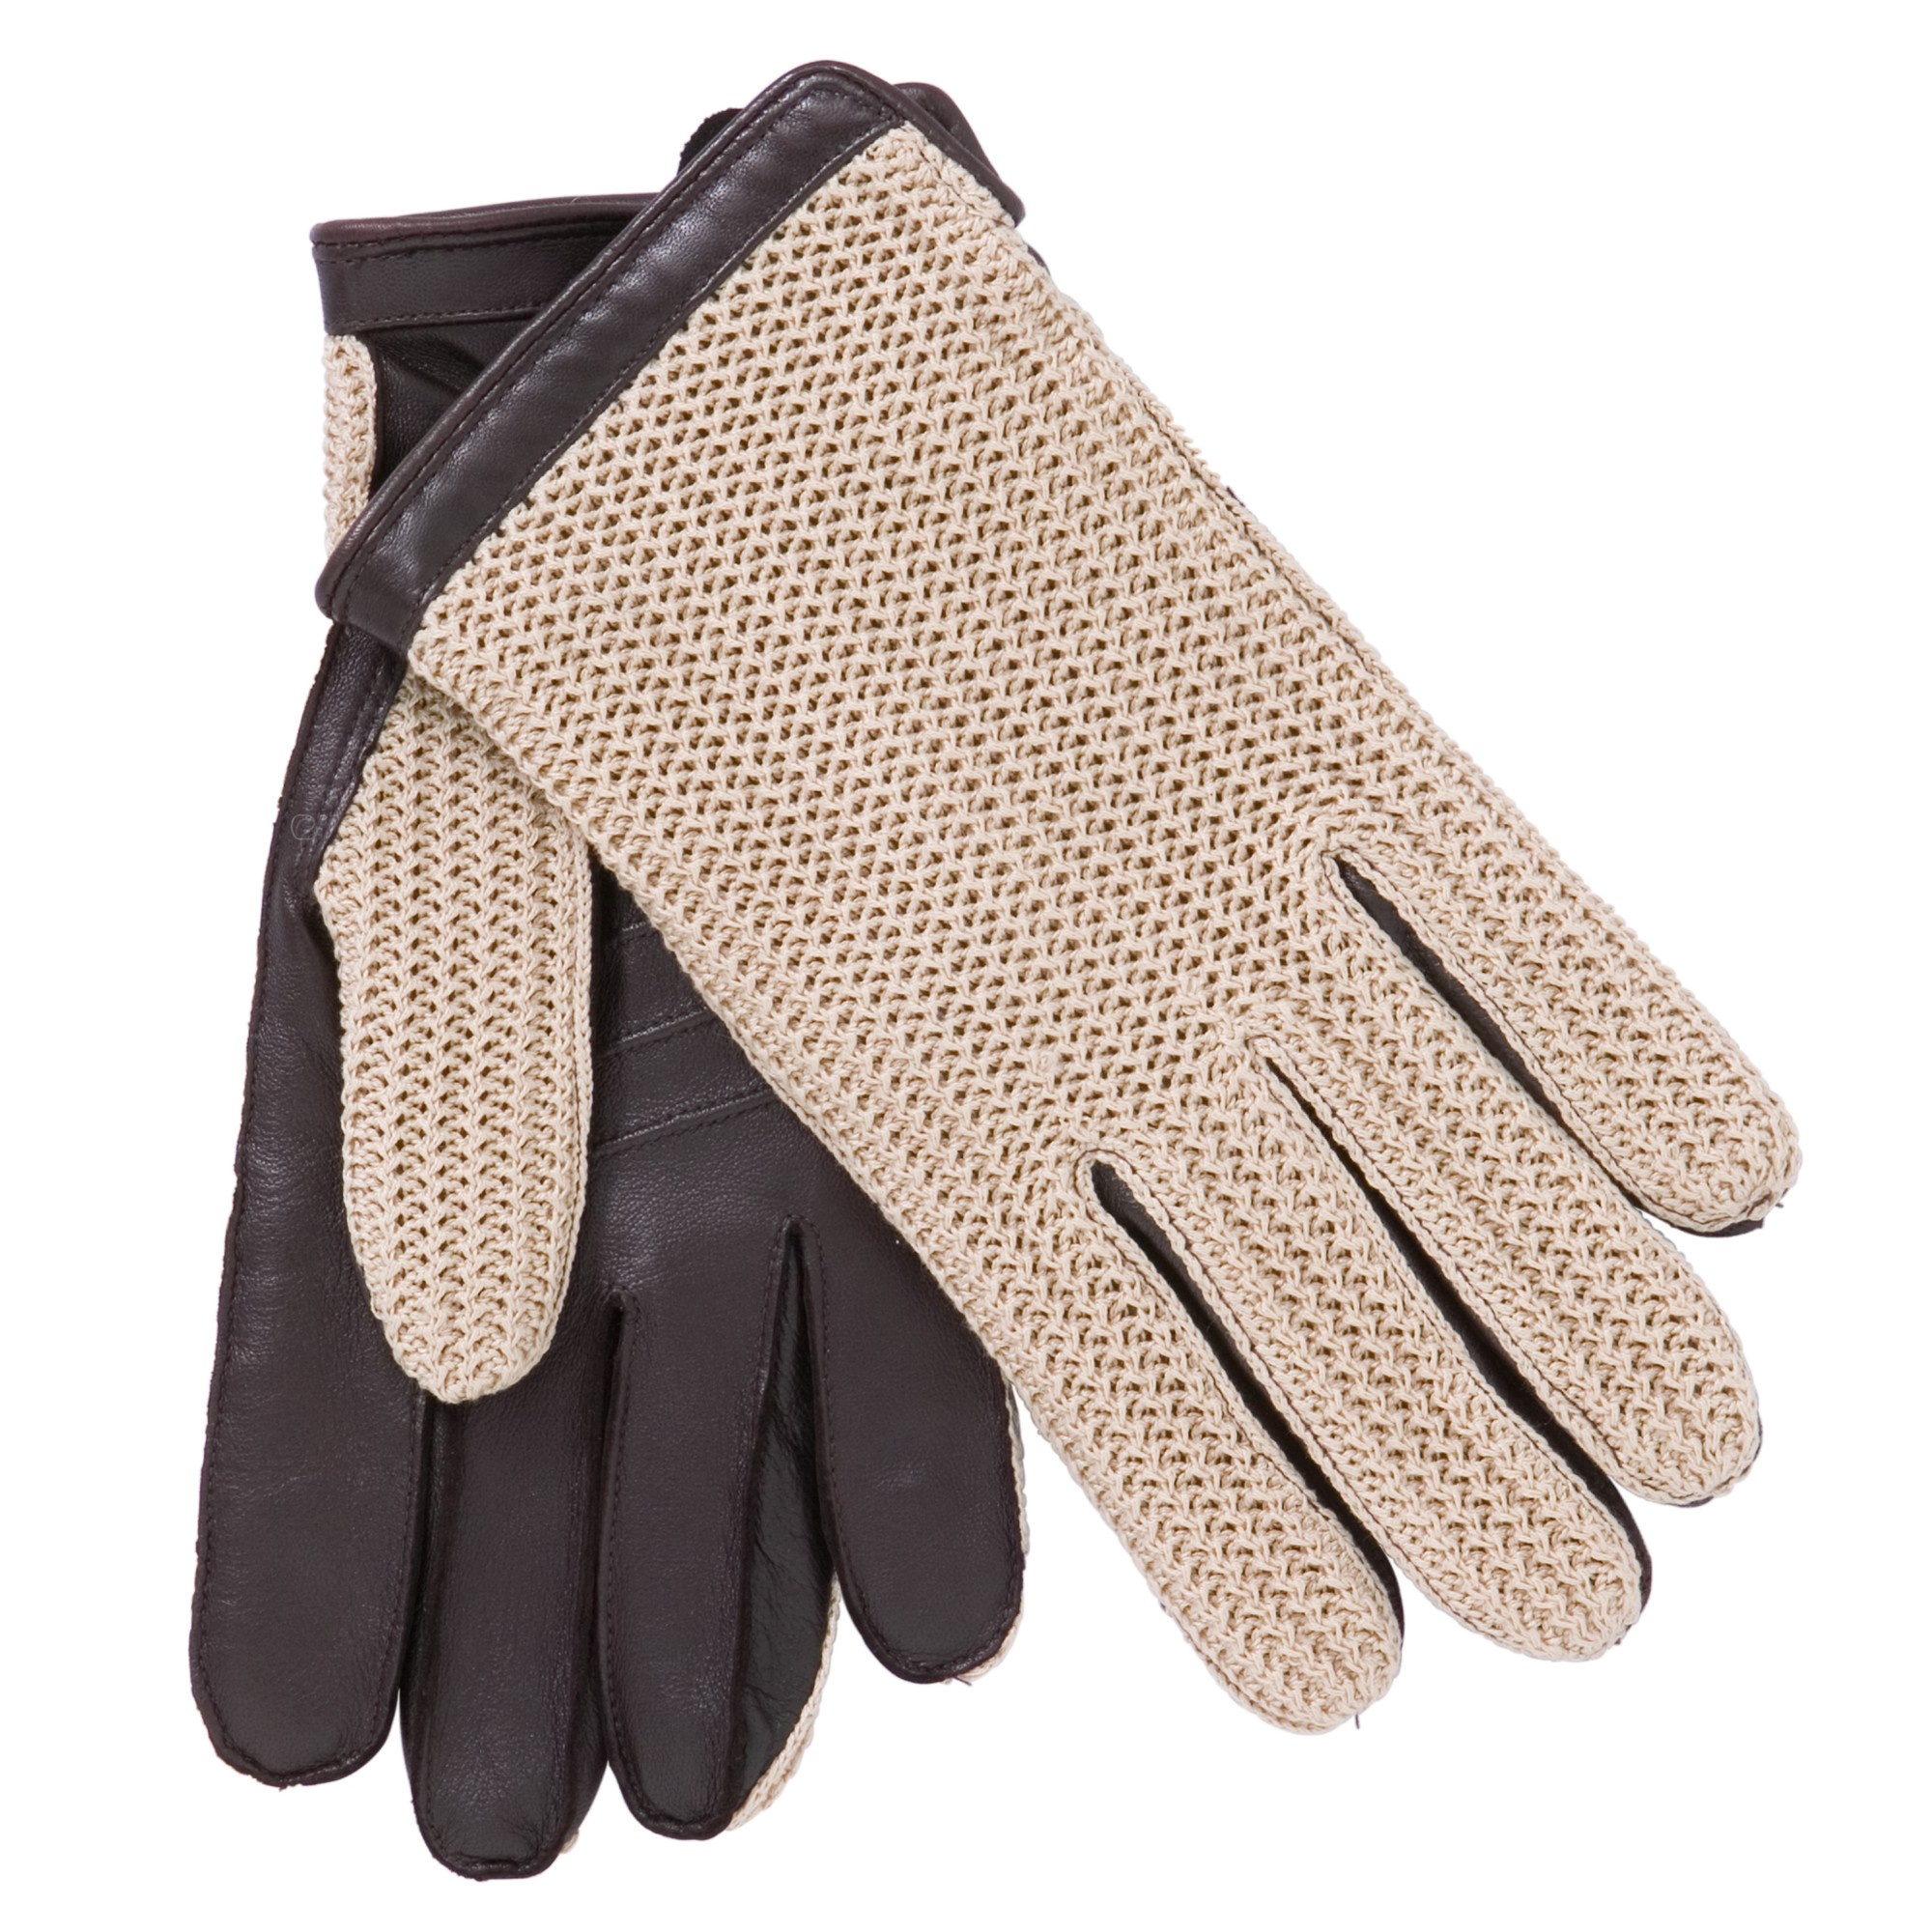 John lewis ladies black leather gloves -  String Back Driving Gloves Uk Gloves